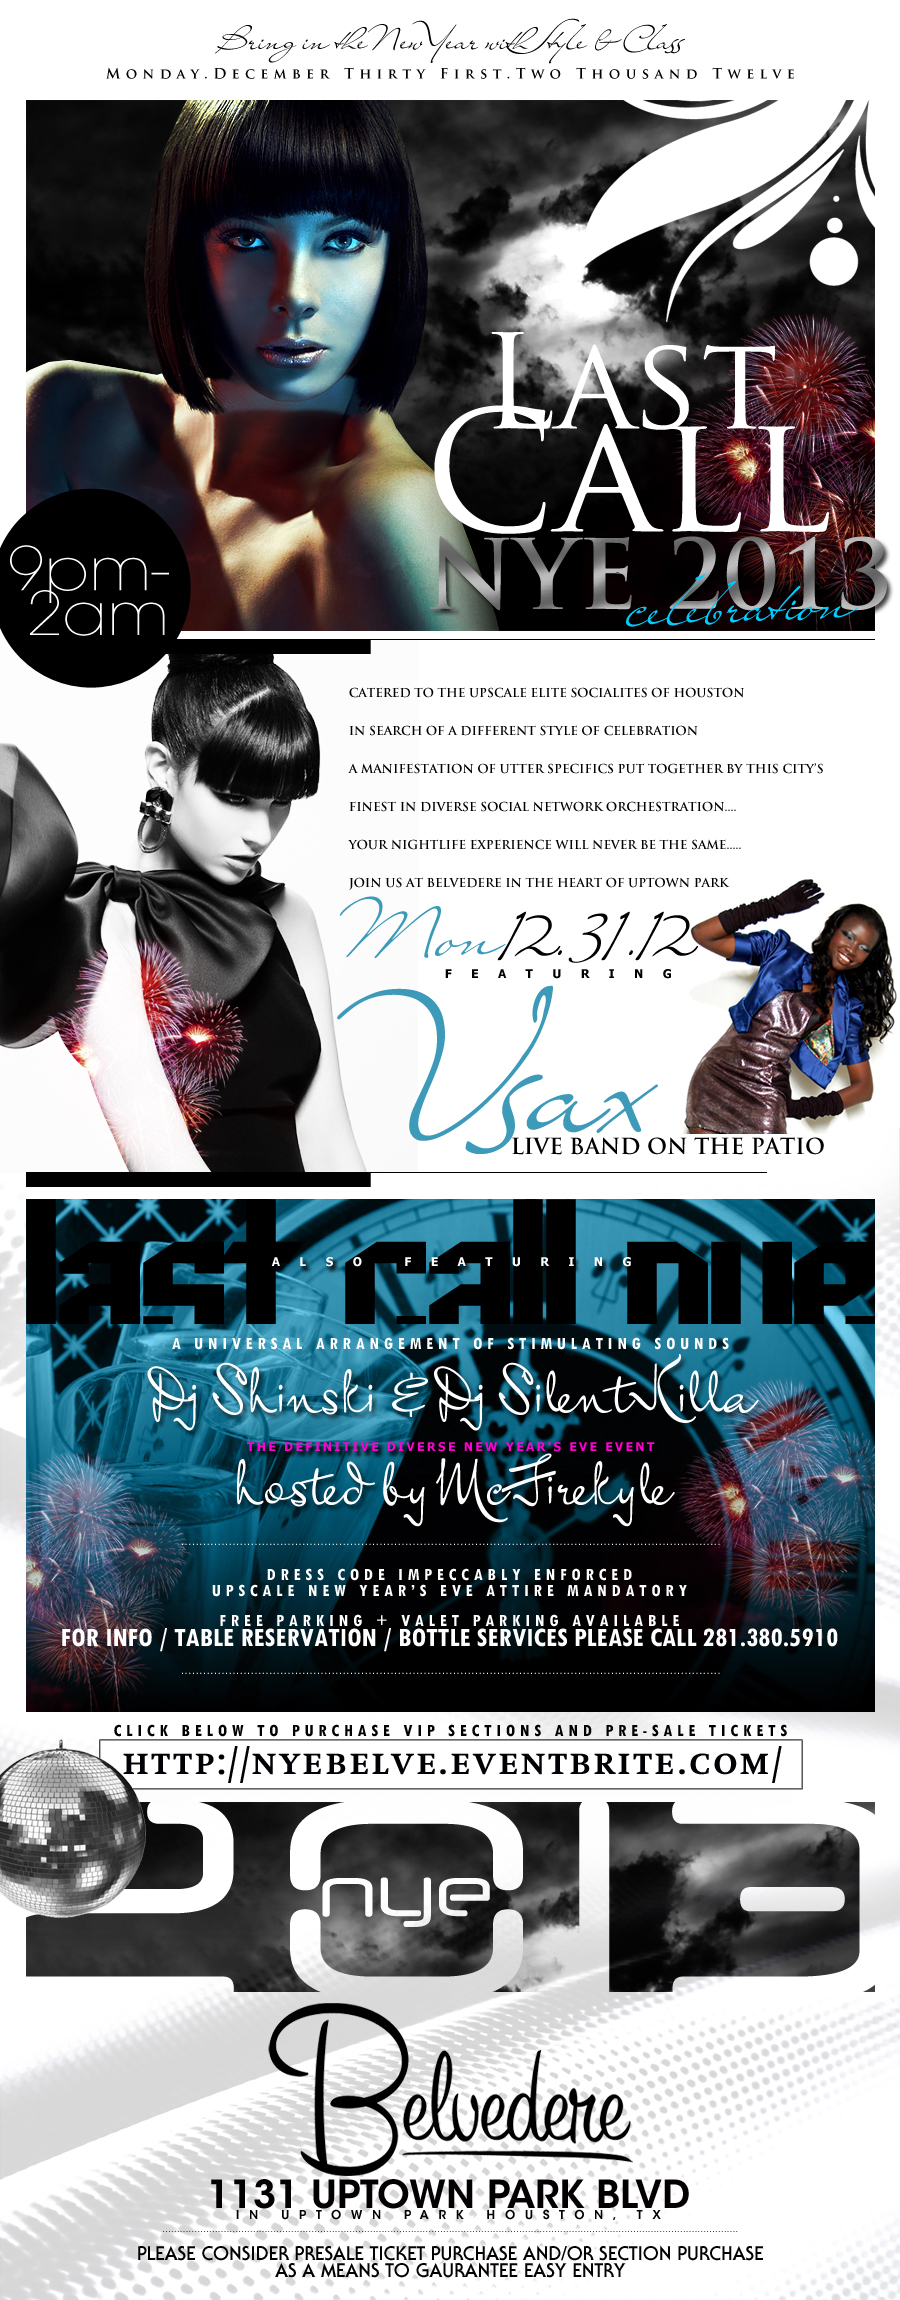 http://dhdesignhouston.com/eventflyers/LASTCALL.jpg